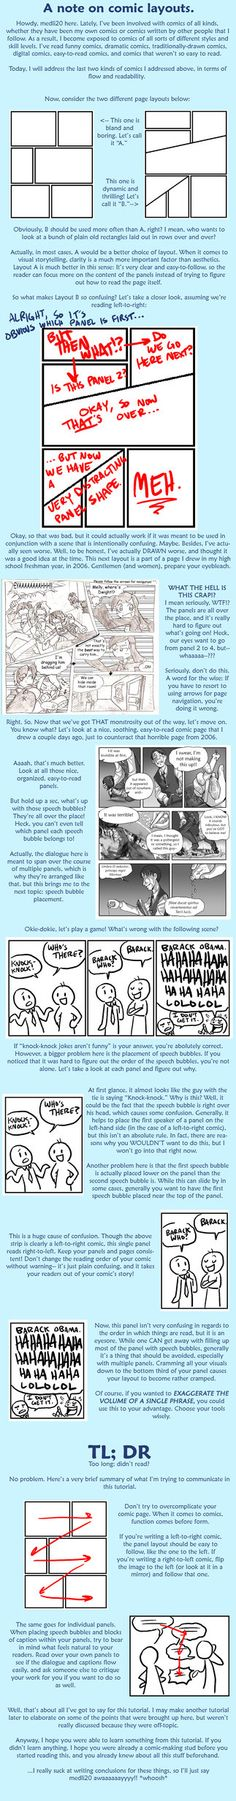 Tutorial: comic layouts by =medli20 on deviantART